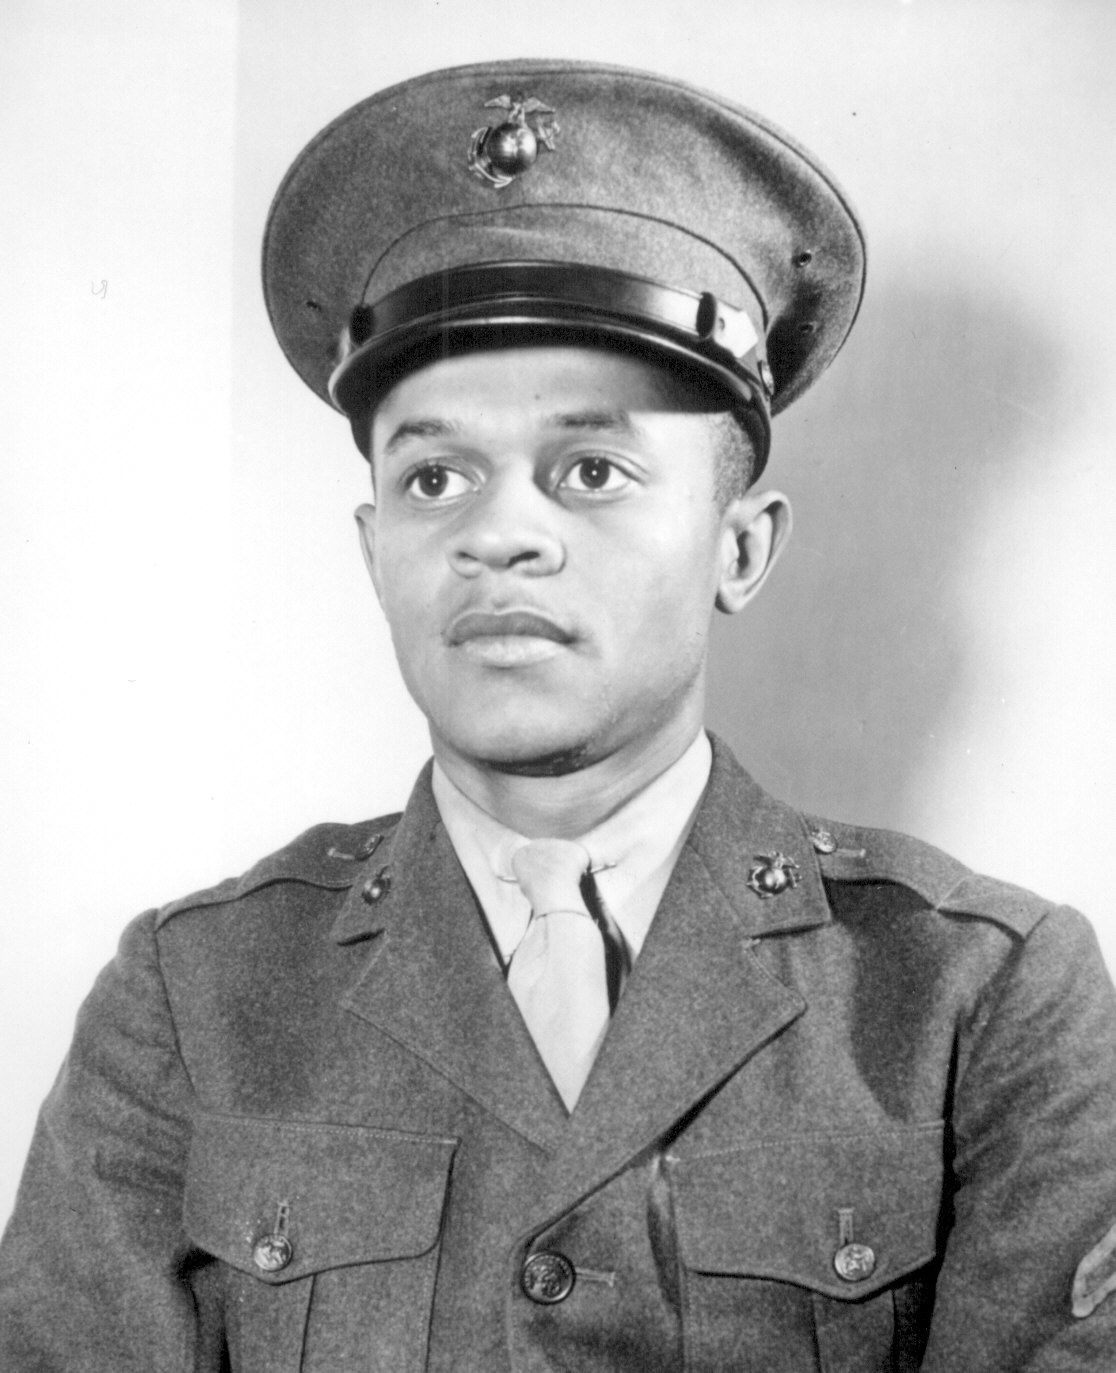 Howard P. Perry was the first black man to be accepted into the U.S. Marine Corps. He joined June 1, 1942, and trained in a first class of 1,200 black men at Camp Lejeune, North Carolina.